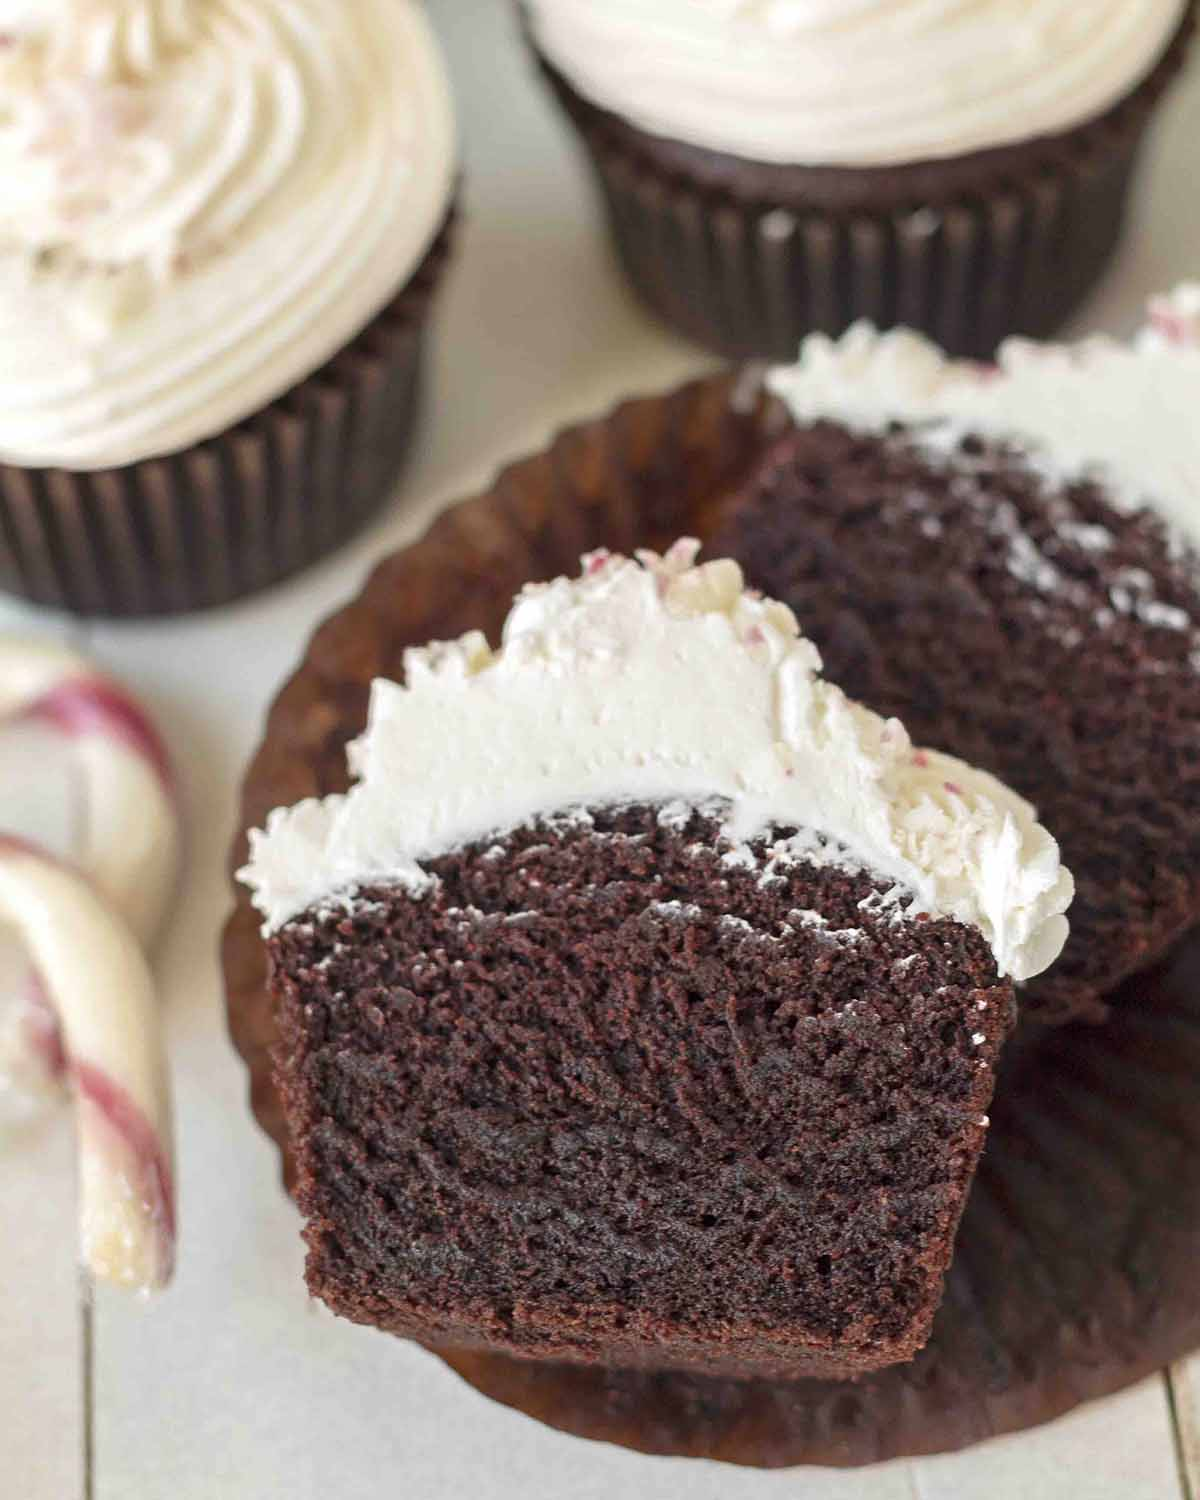 An overhead shot of chocolate mint cupcake split in half to show the soft inner texture.